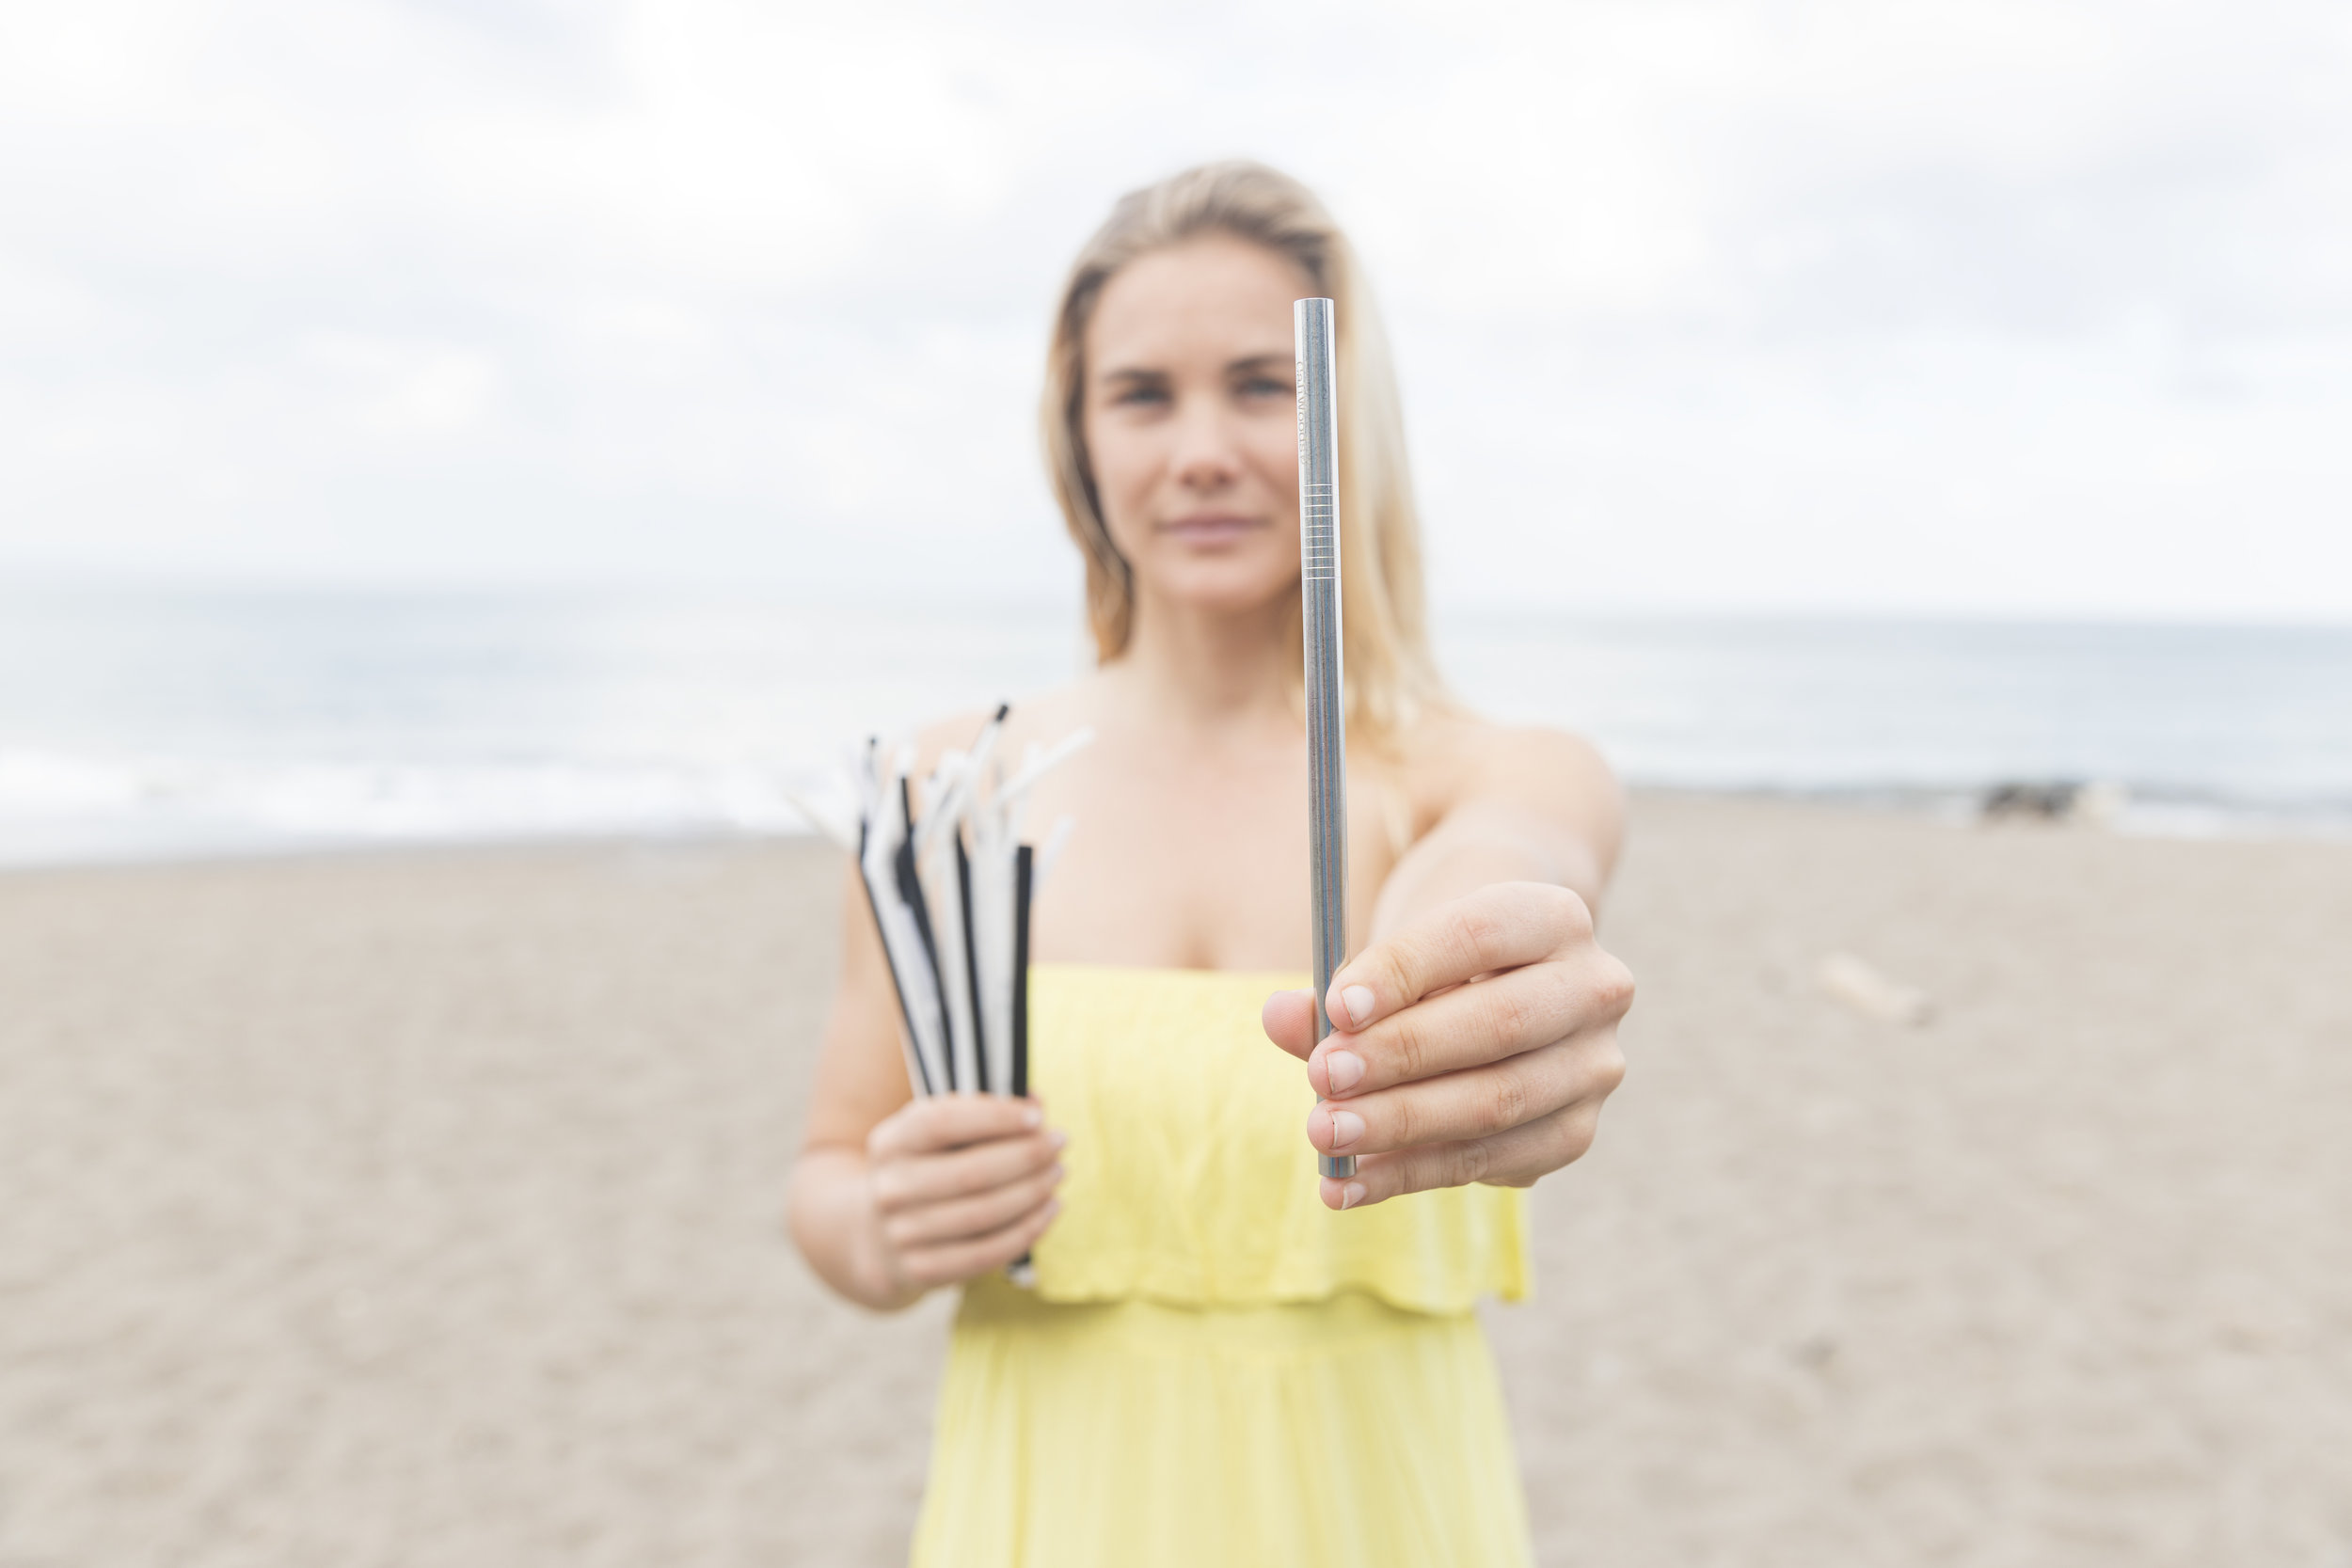 Shay Lawrence holding the product that started it all: reusable straws. Photo: CaliWoods